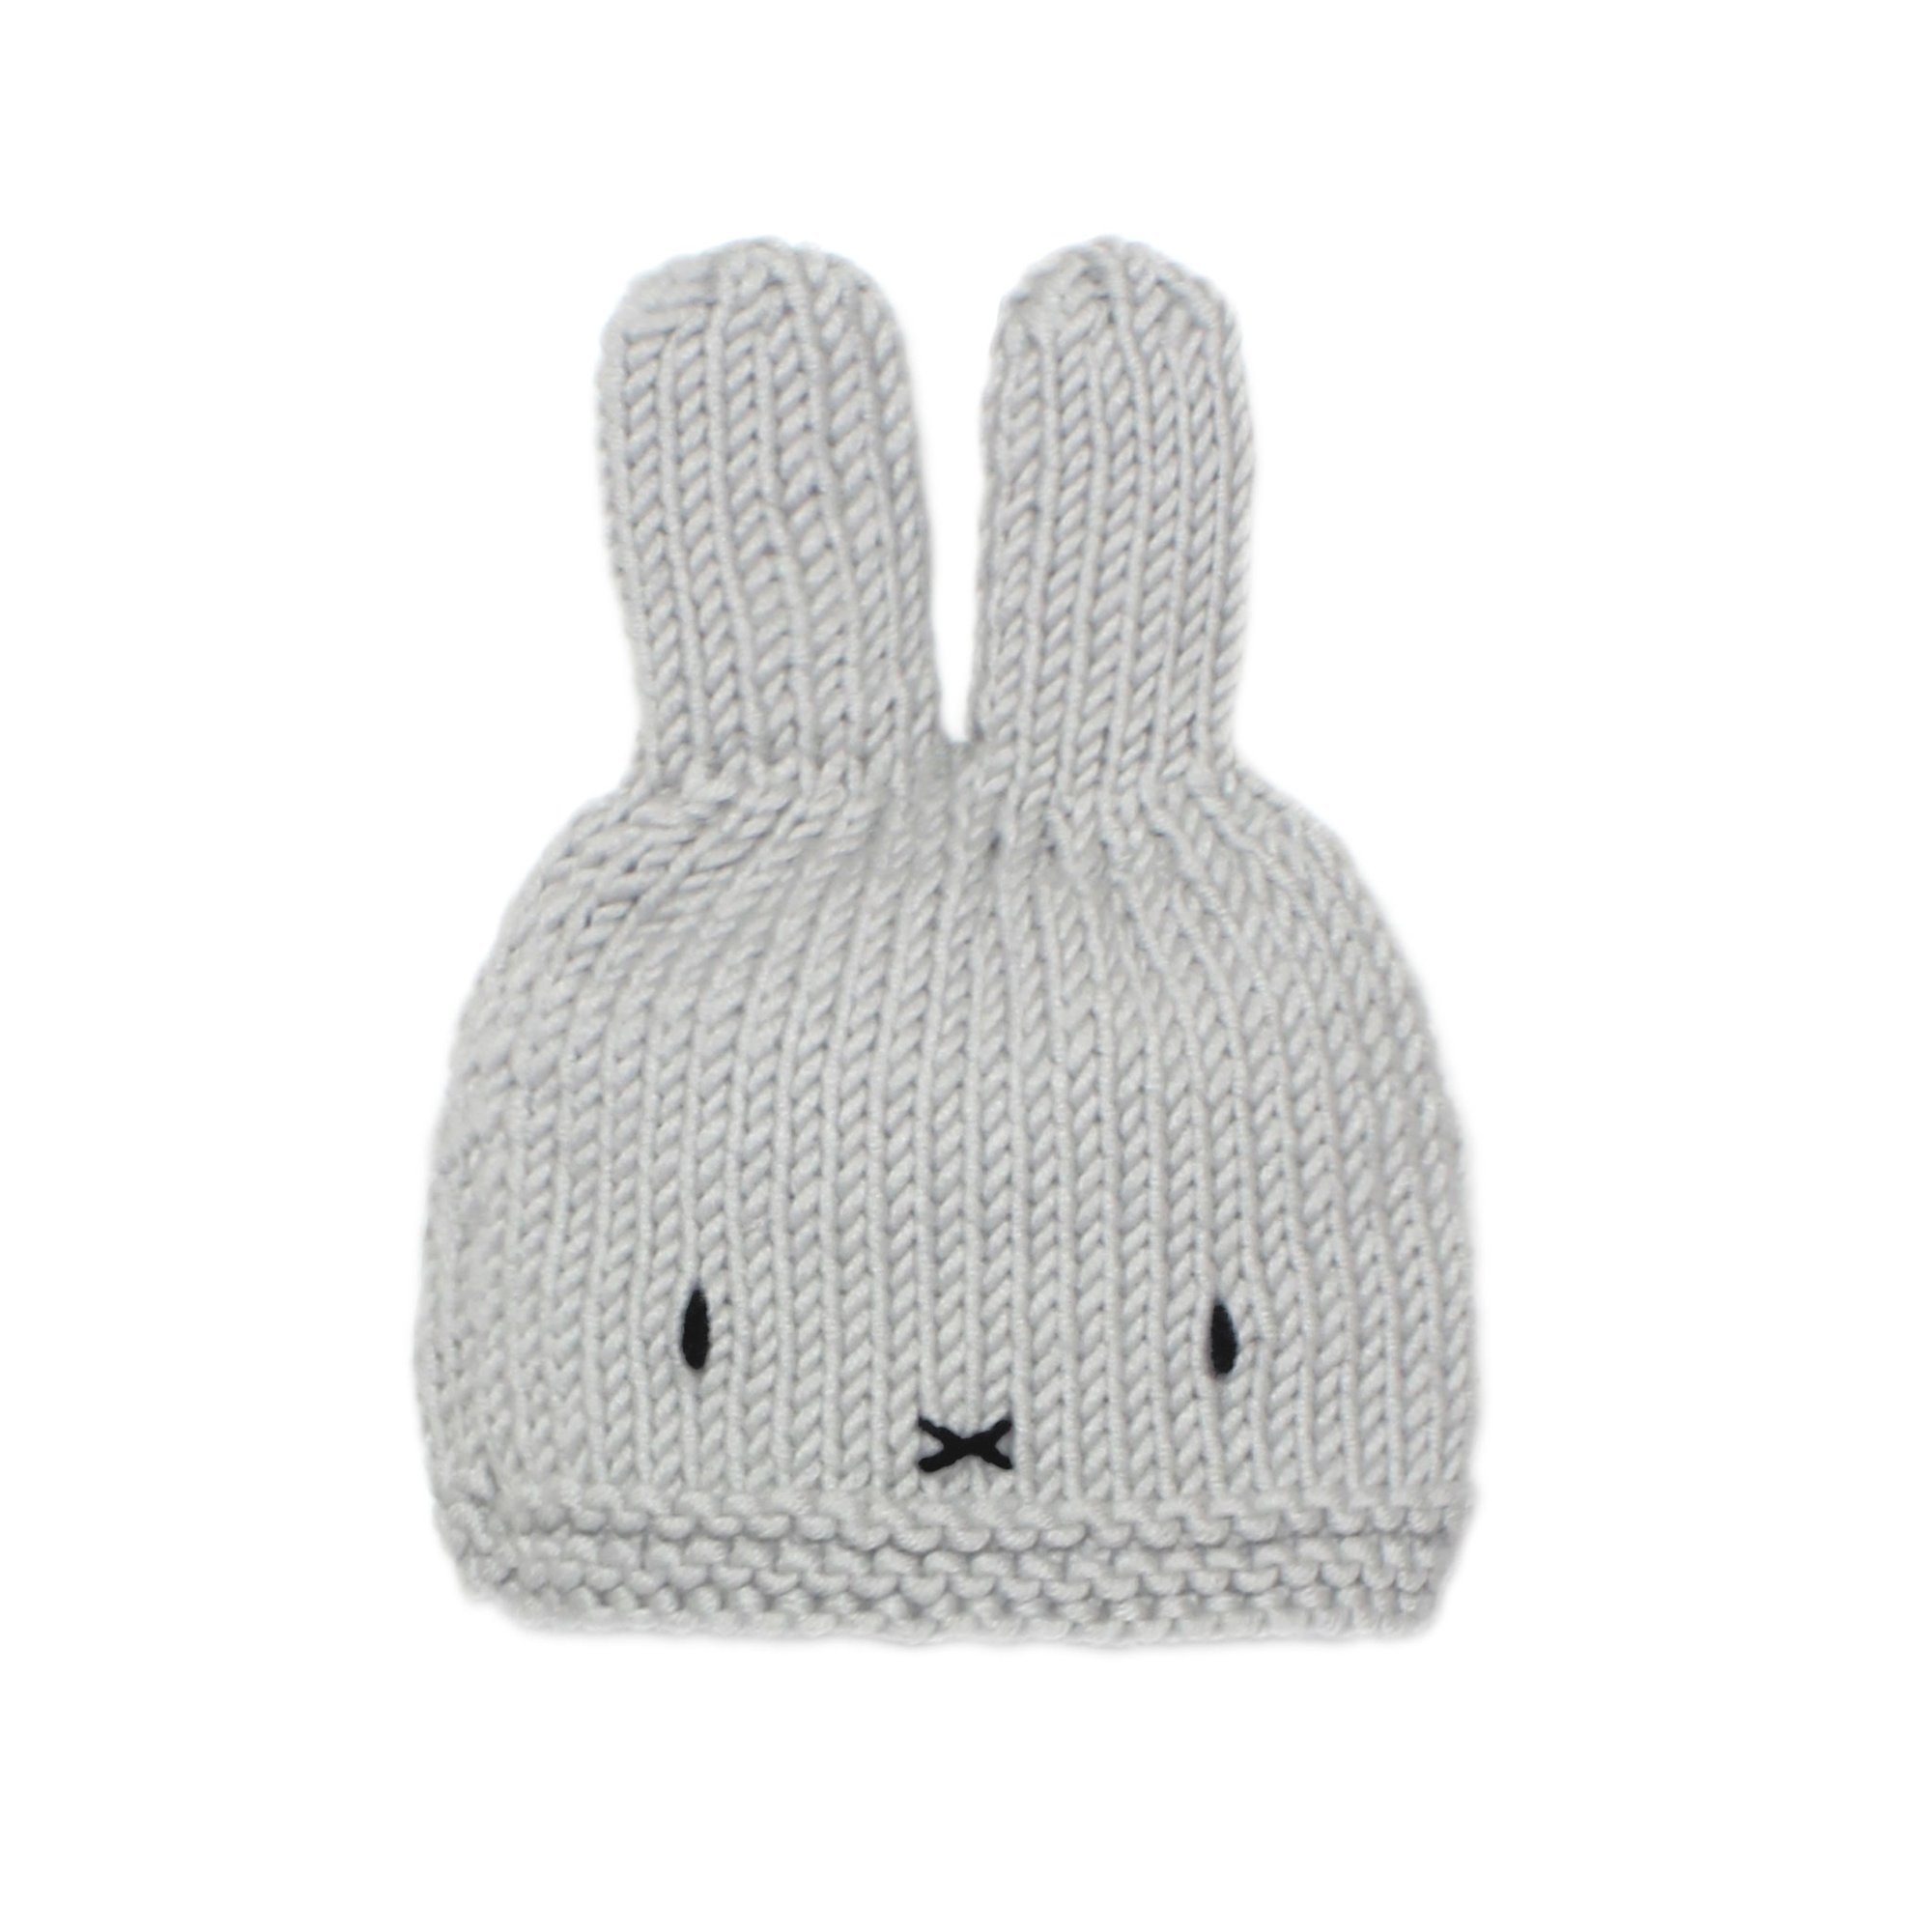 Stitch & Story Miffy's Hat Dove Grey